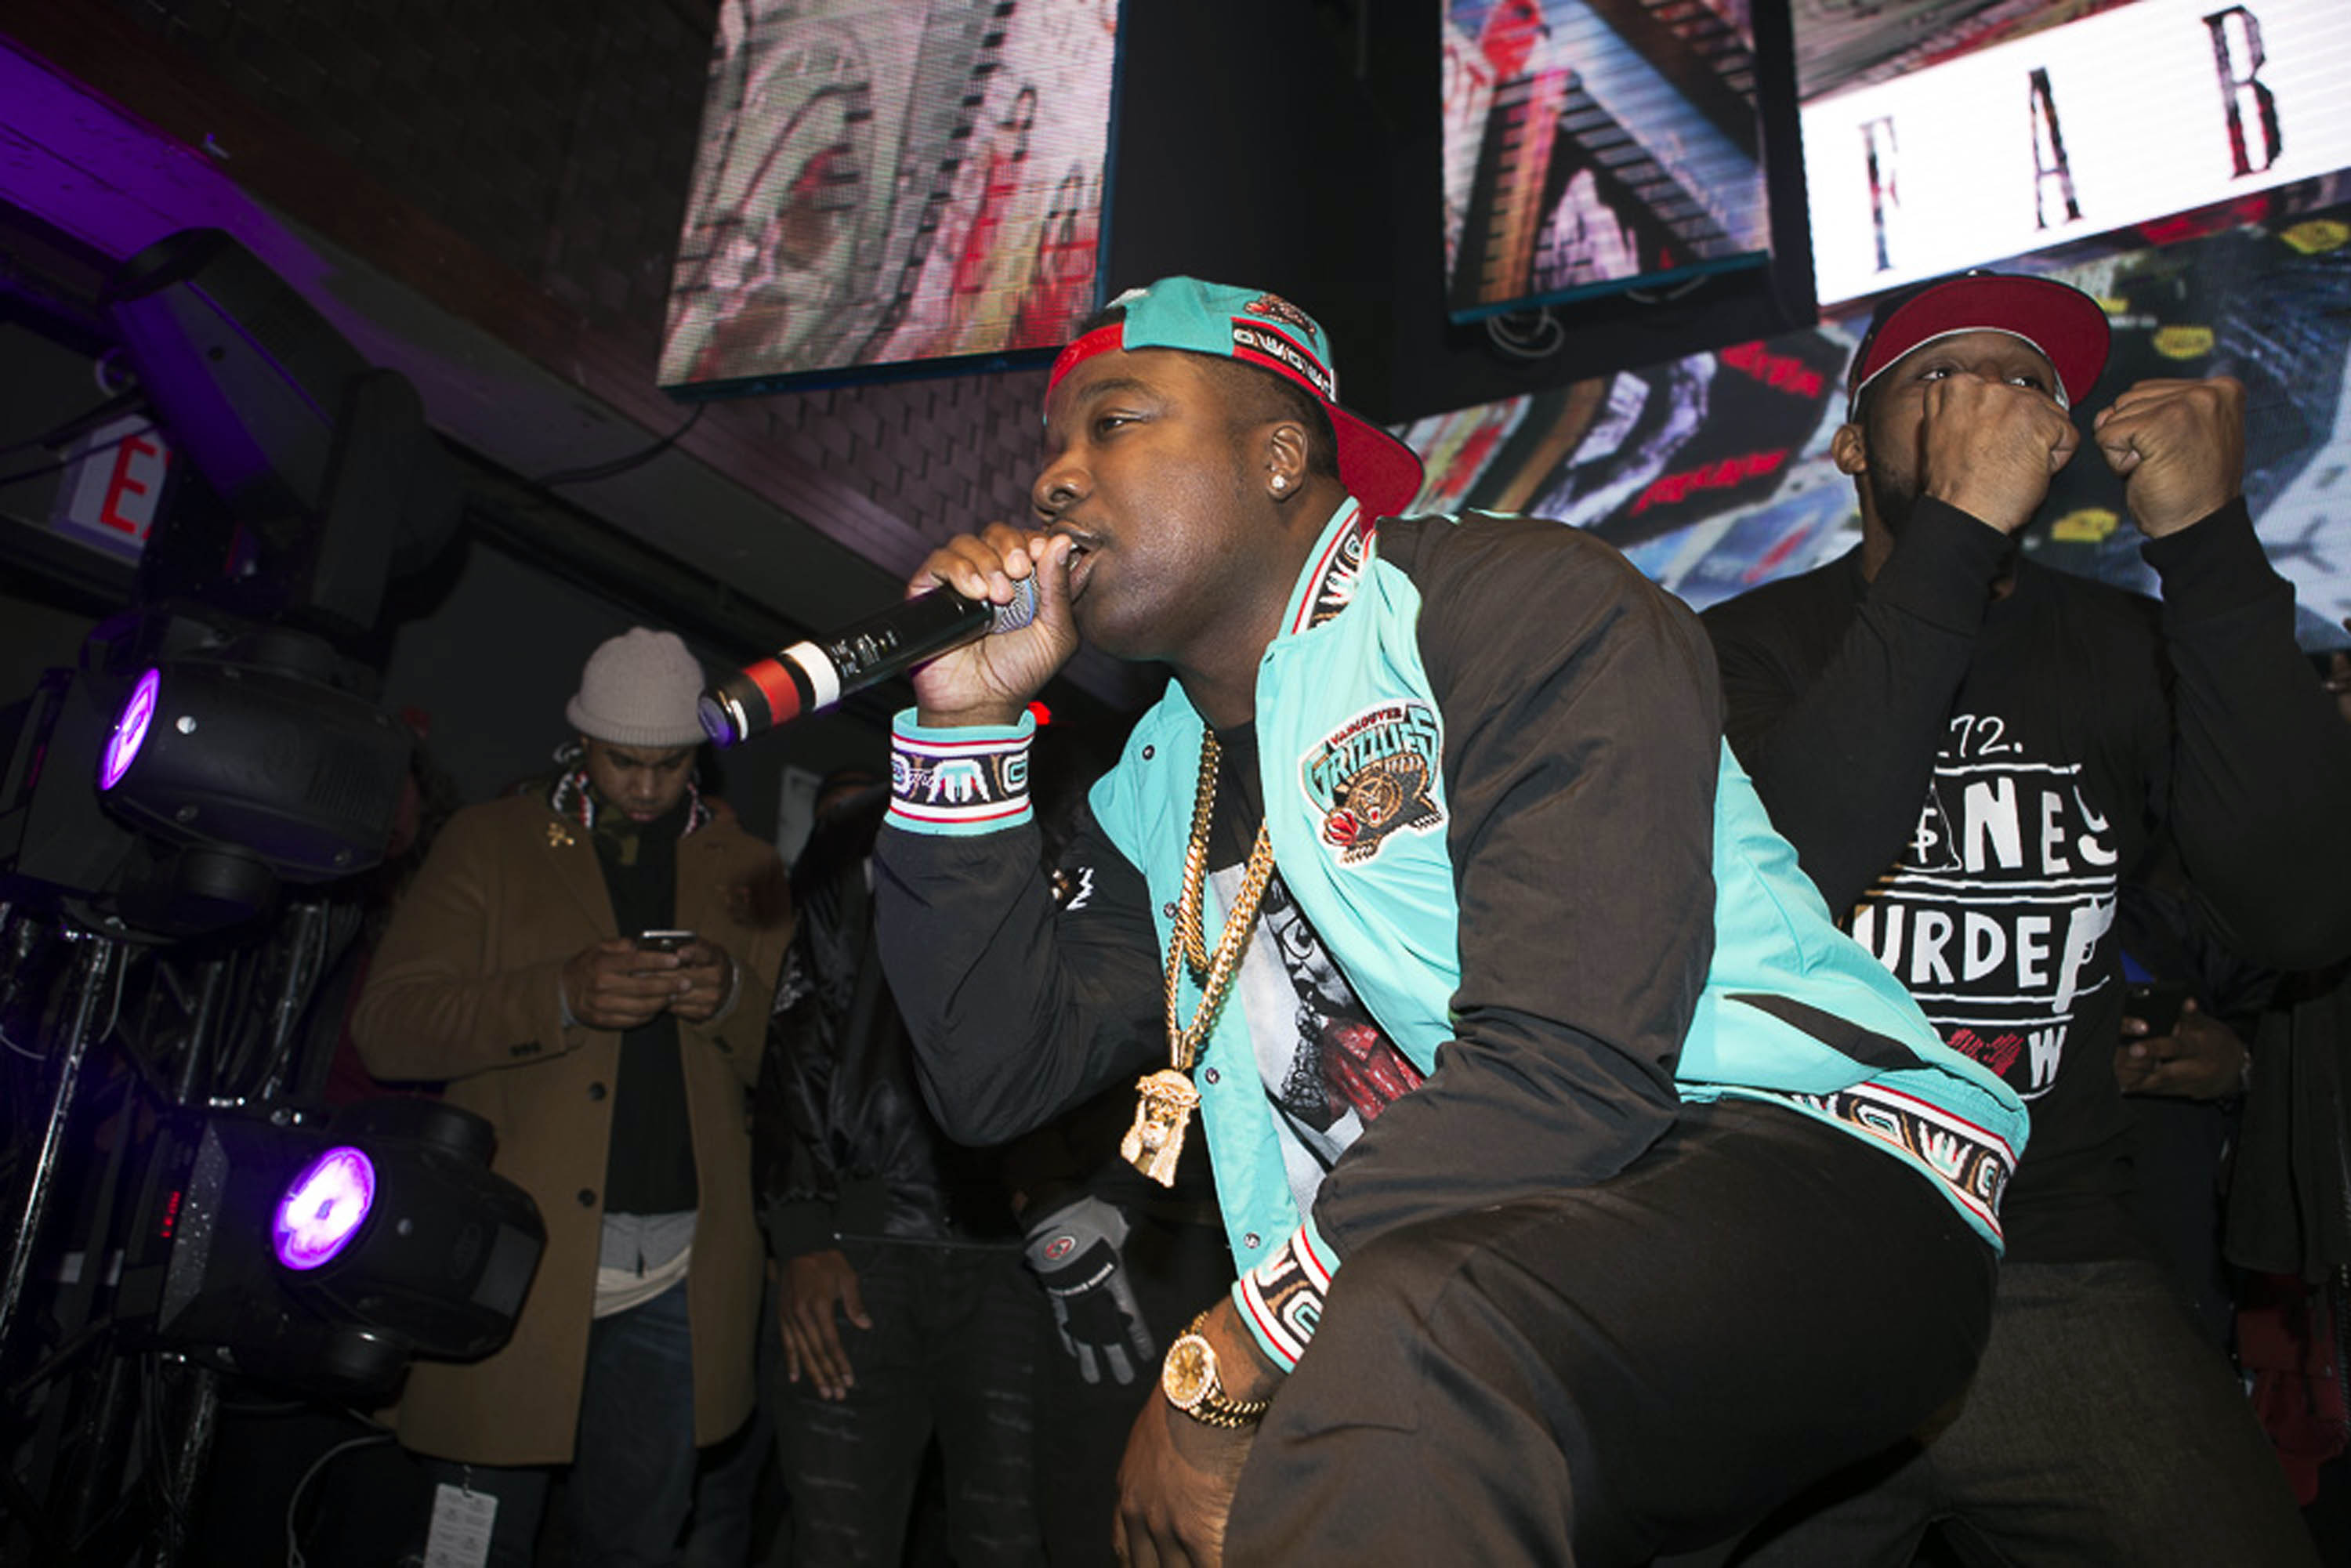 Troy Ave performs at Stage 48 on Nov. 17, 2015, in New York City.